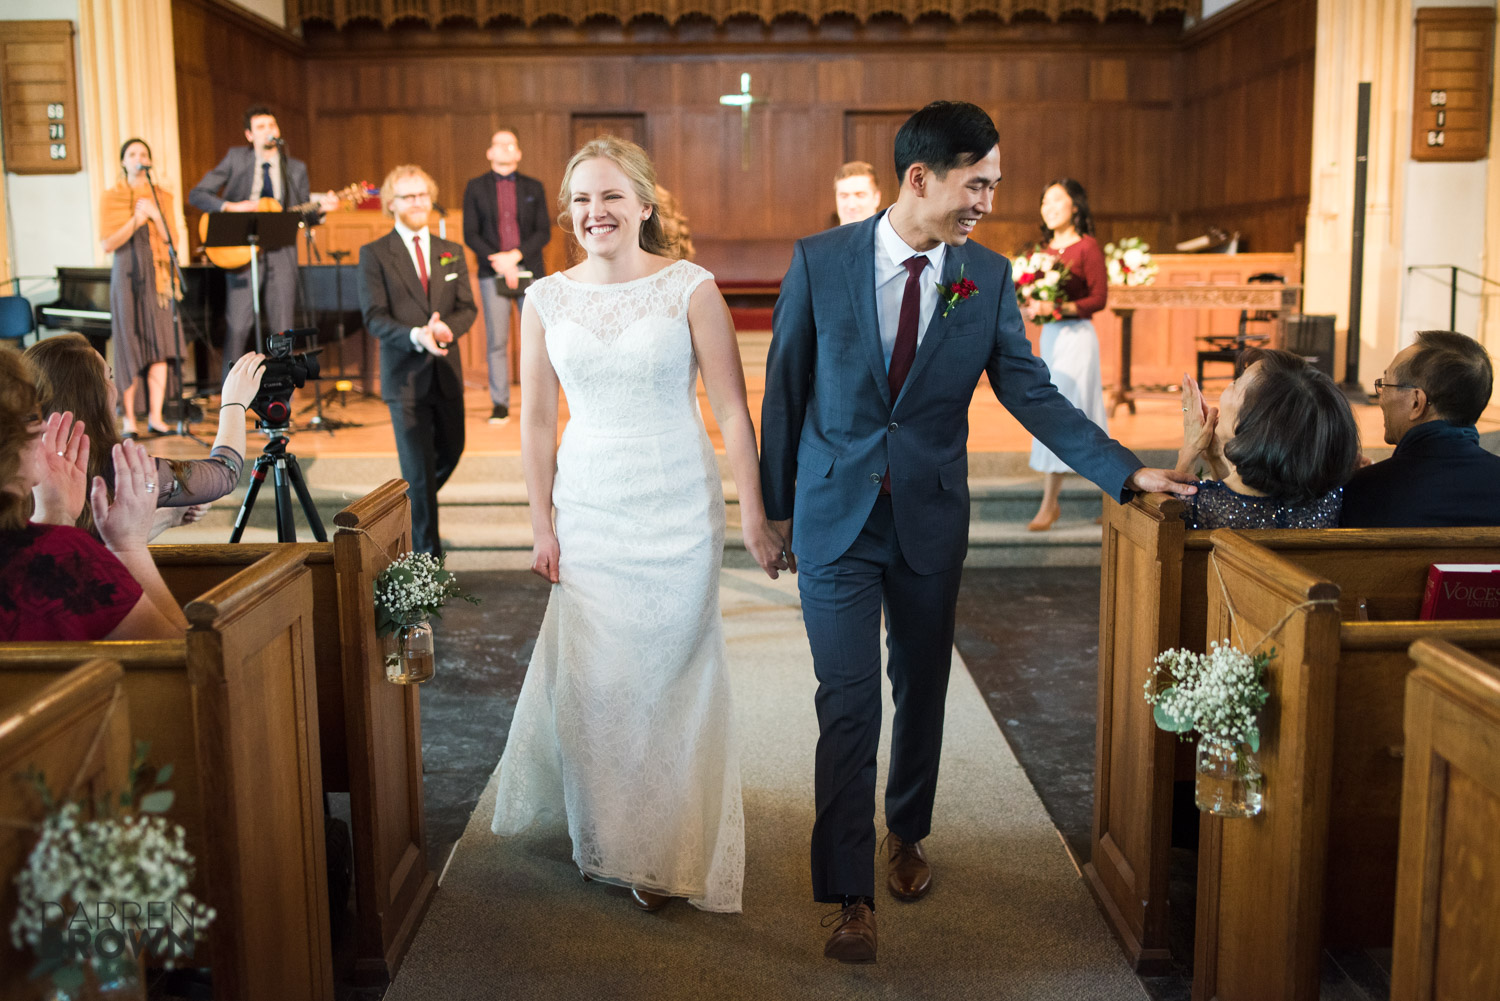 bride and groom walk down isle after getting married